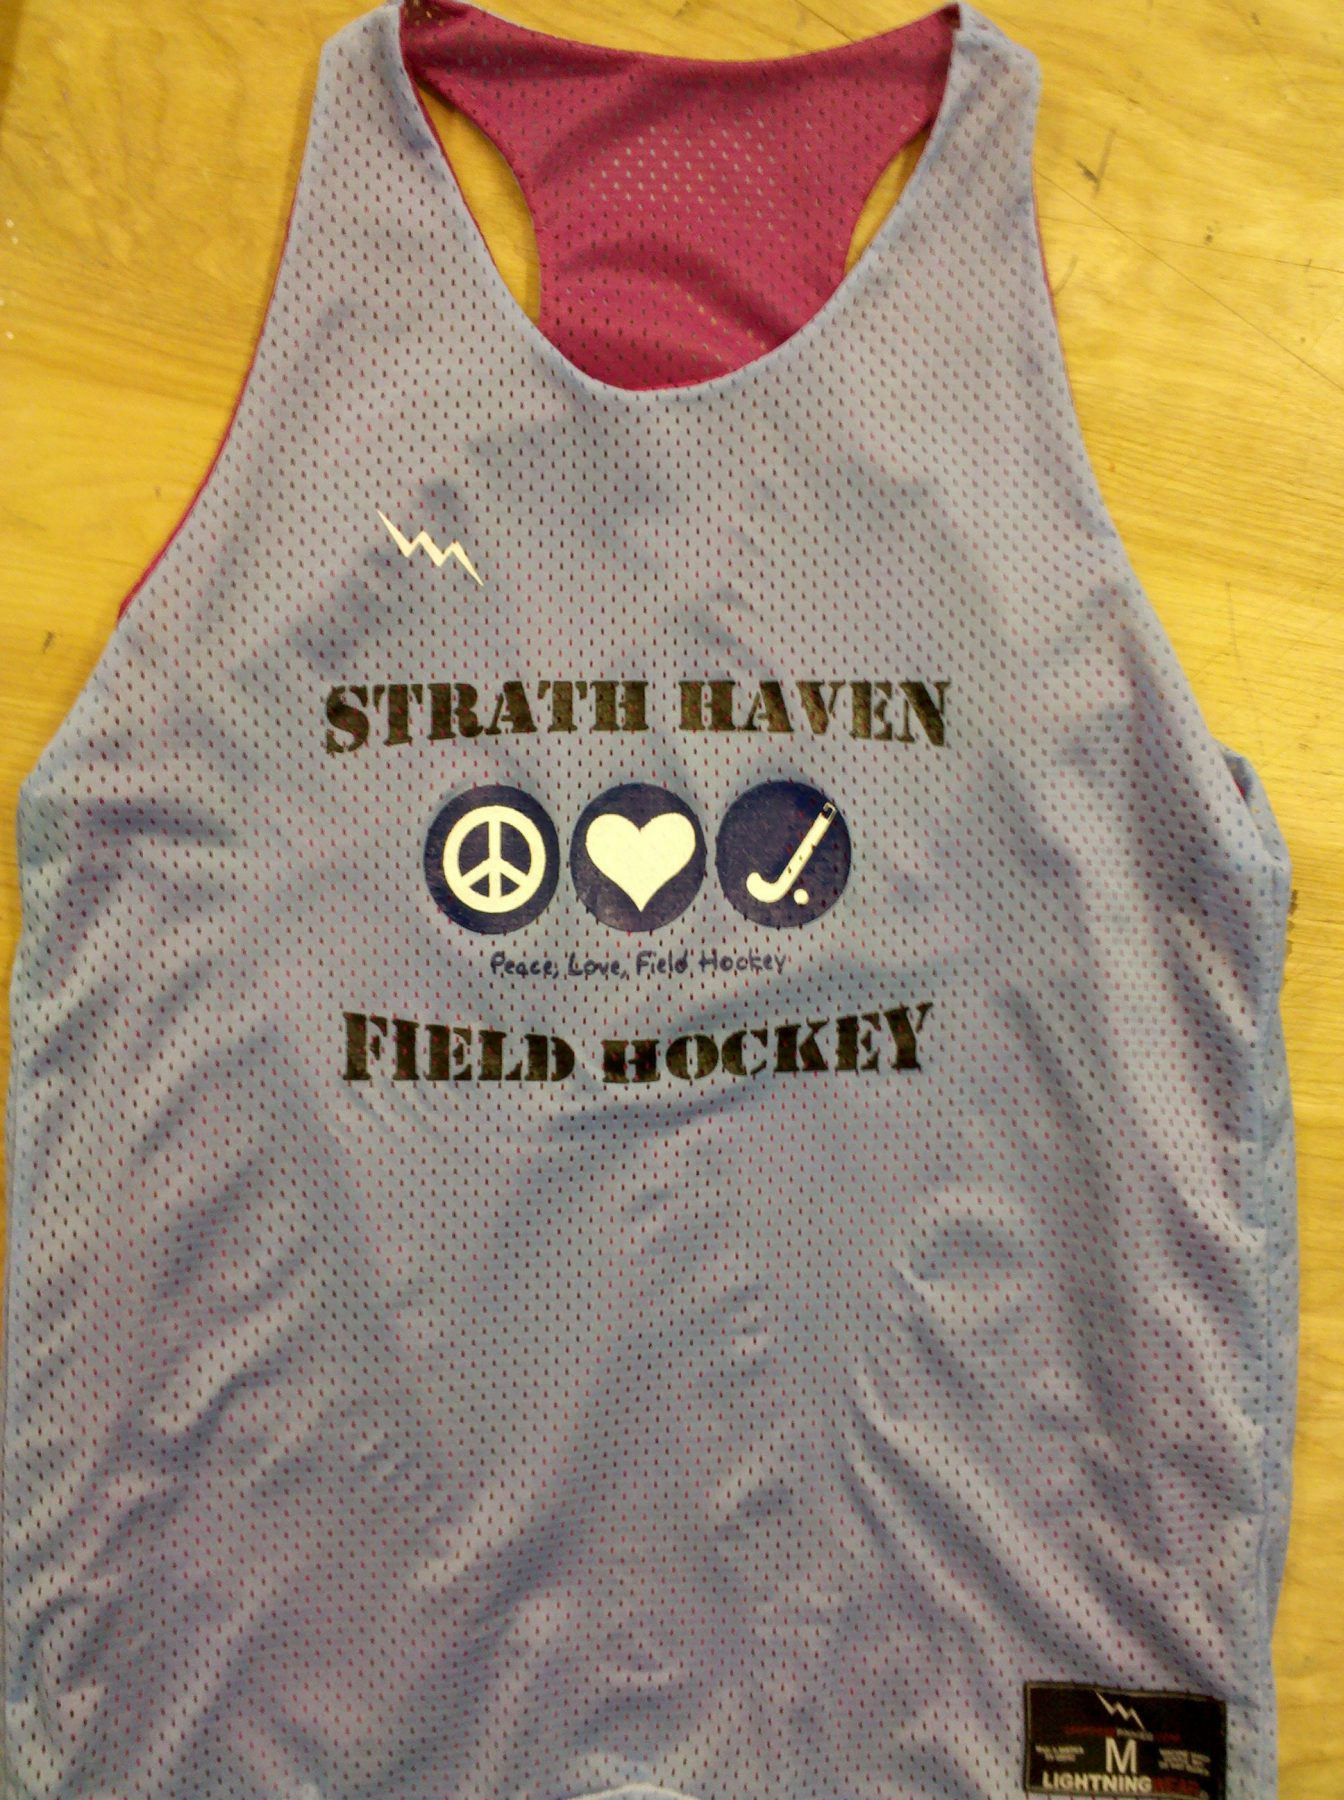 strath haven pinnies - field hockey pinnie